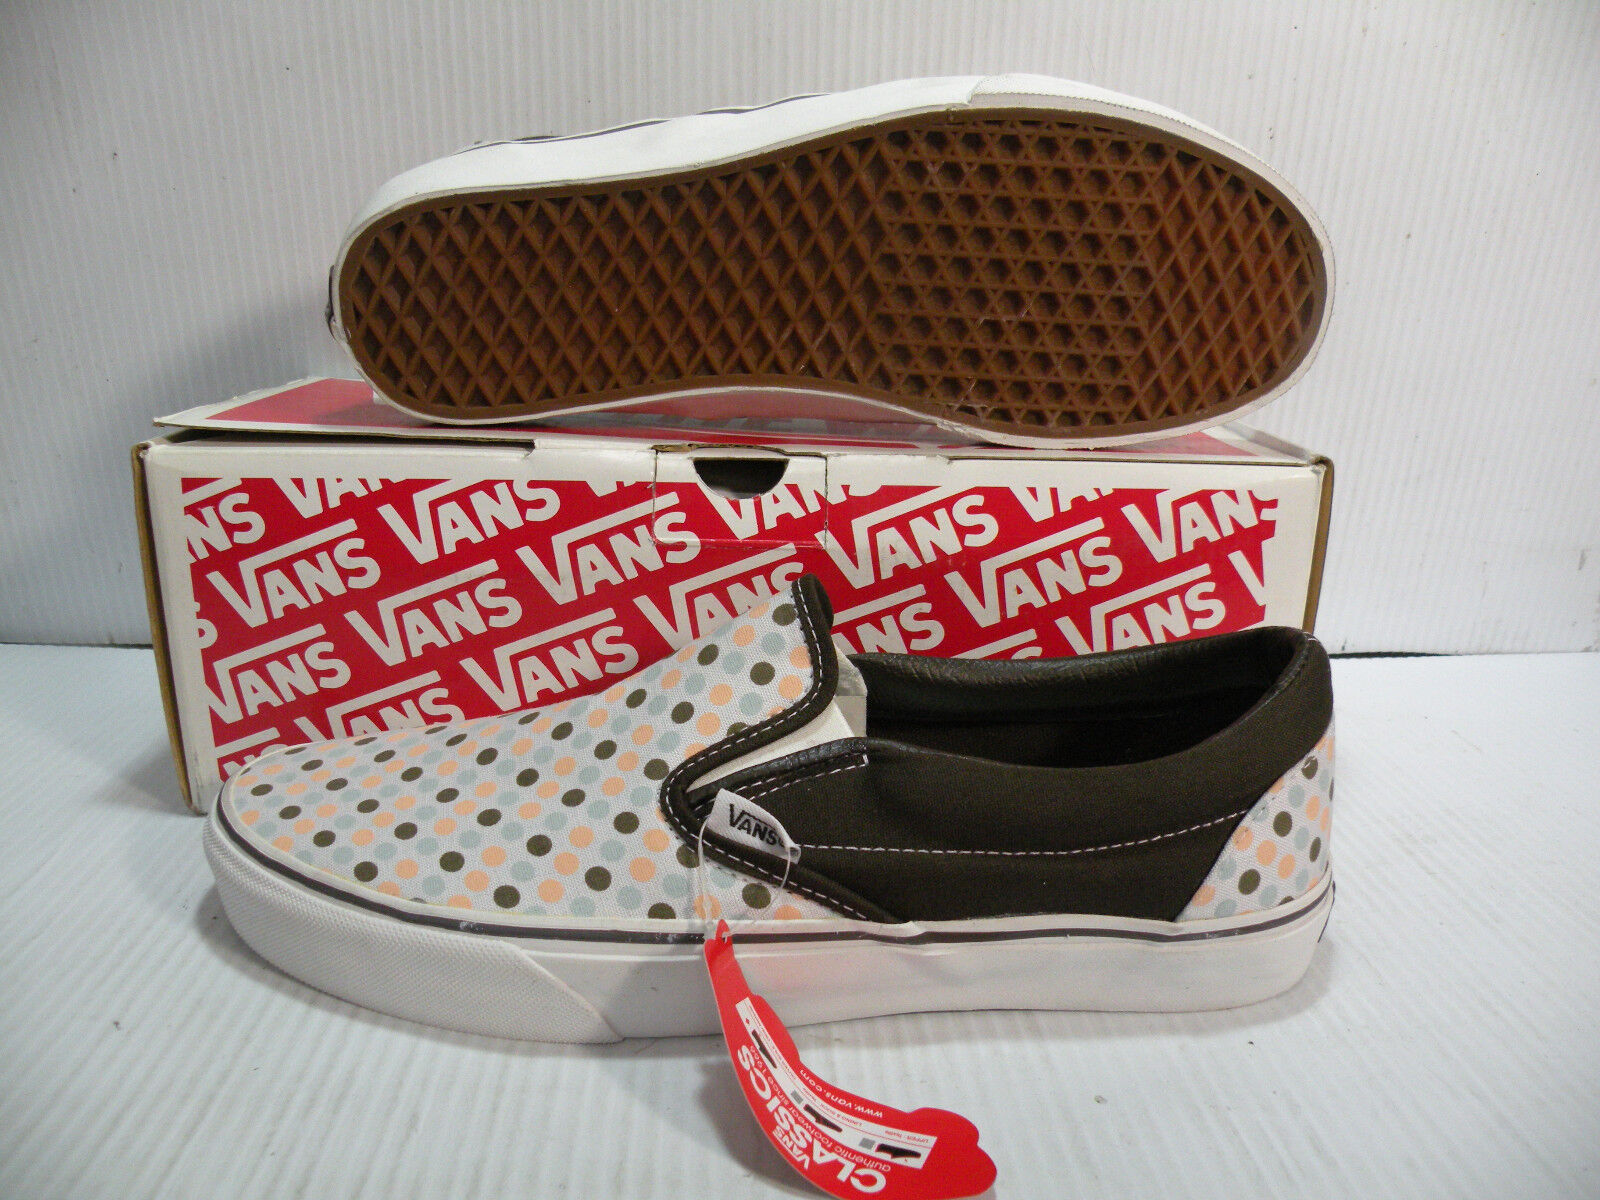 VANS CLASSIC LOW POLKA DOTS MEN SHOES COFFEE WALNUT 862299 SIZE 11 NEW